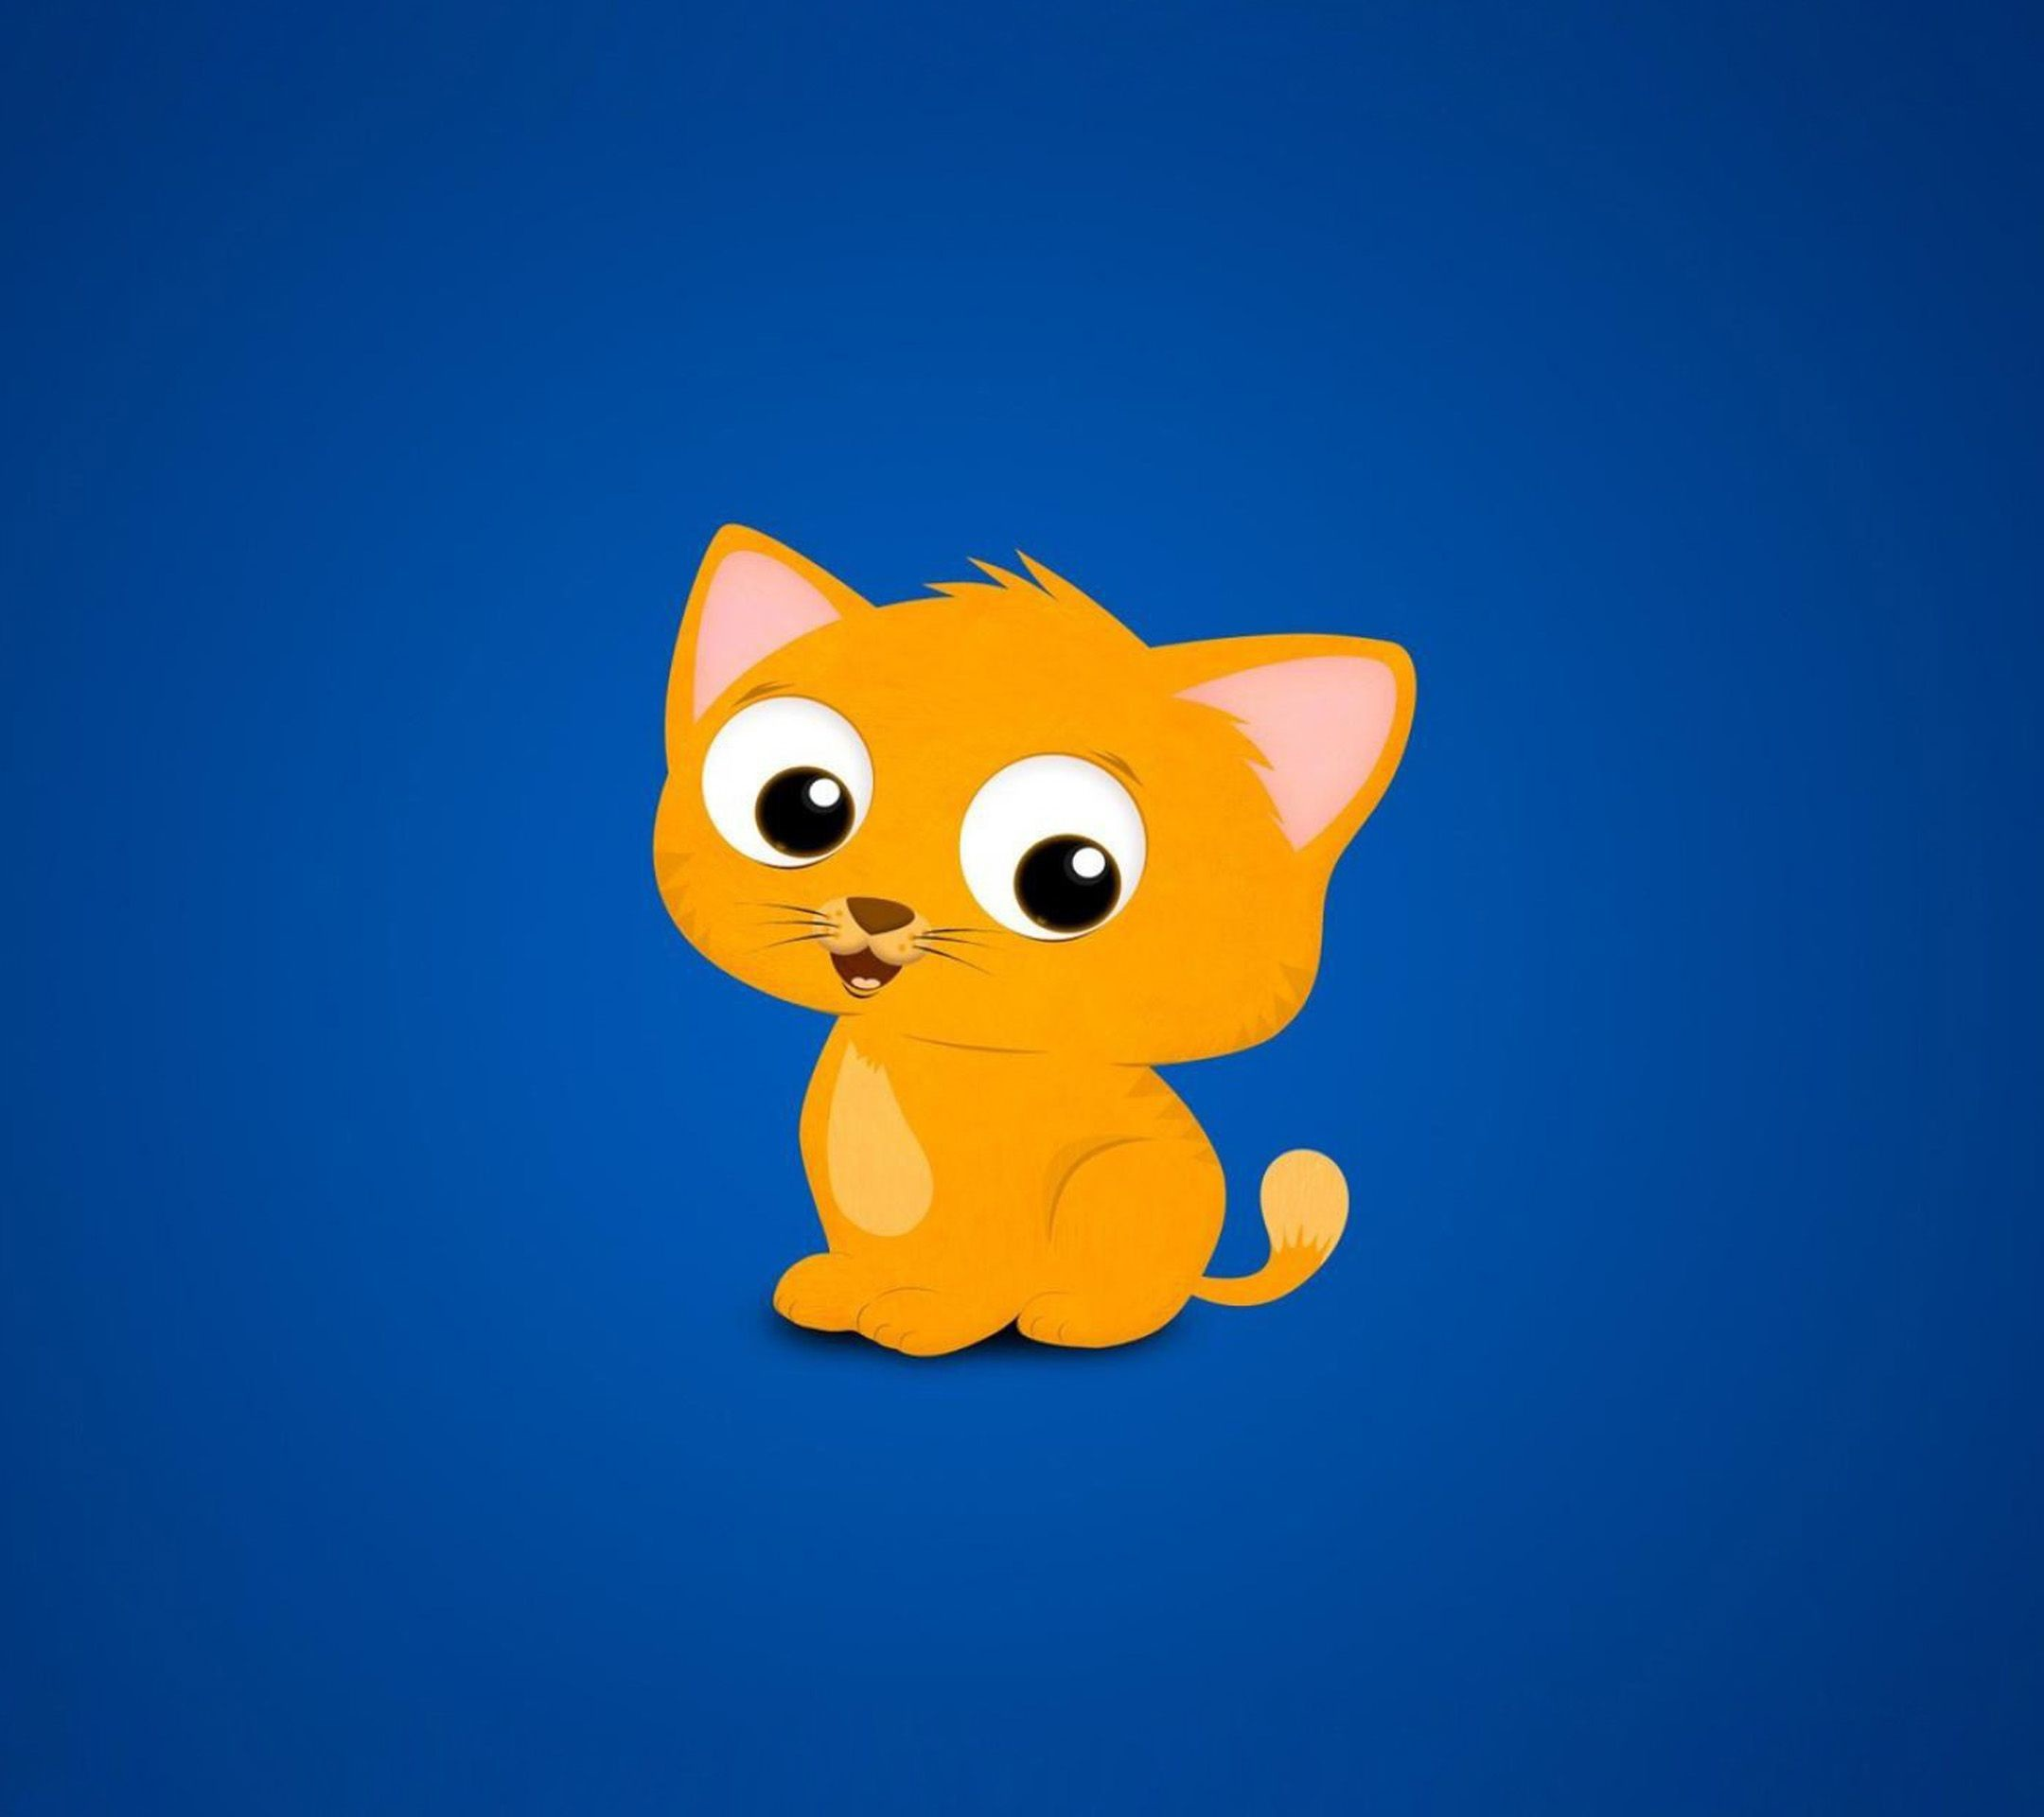 Cute Cartoon Cat Galaxy S4 Wallpapers Background And Themes .